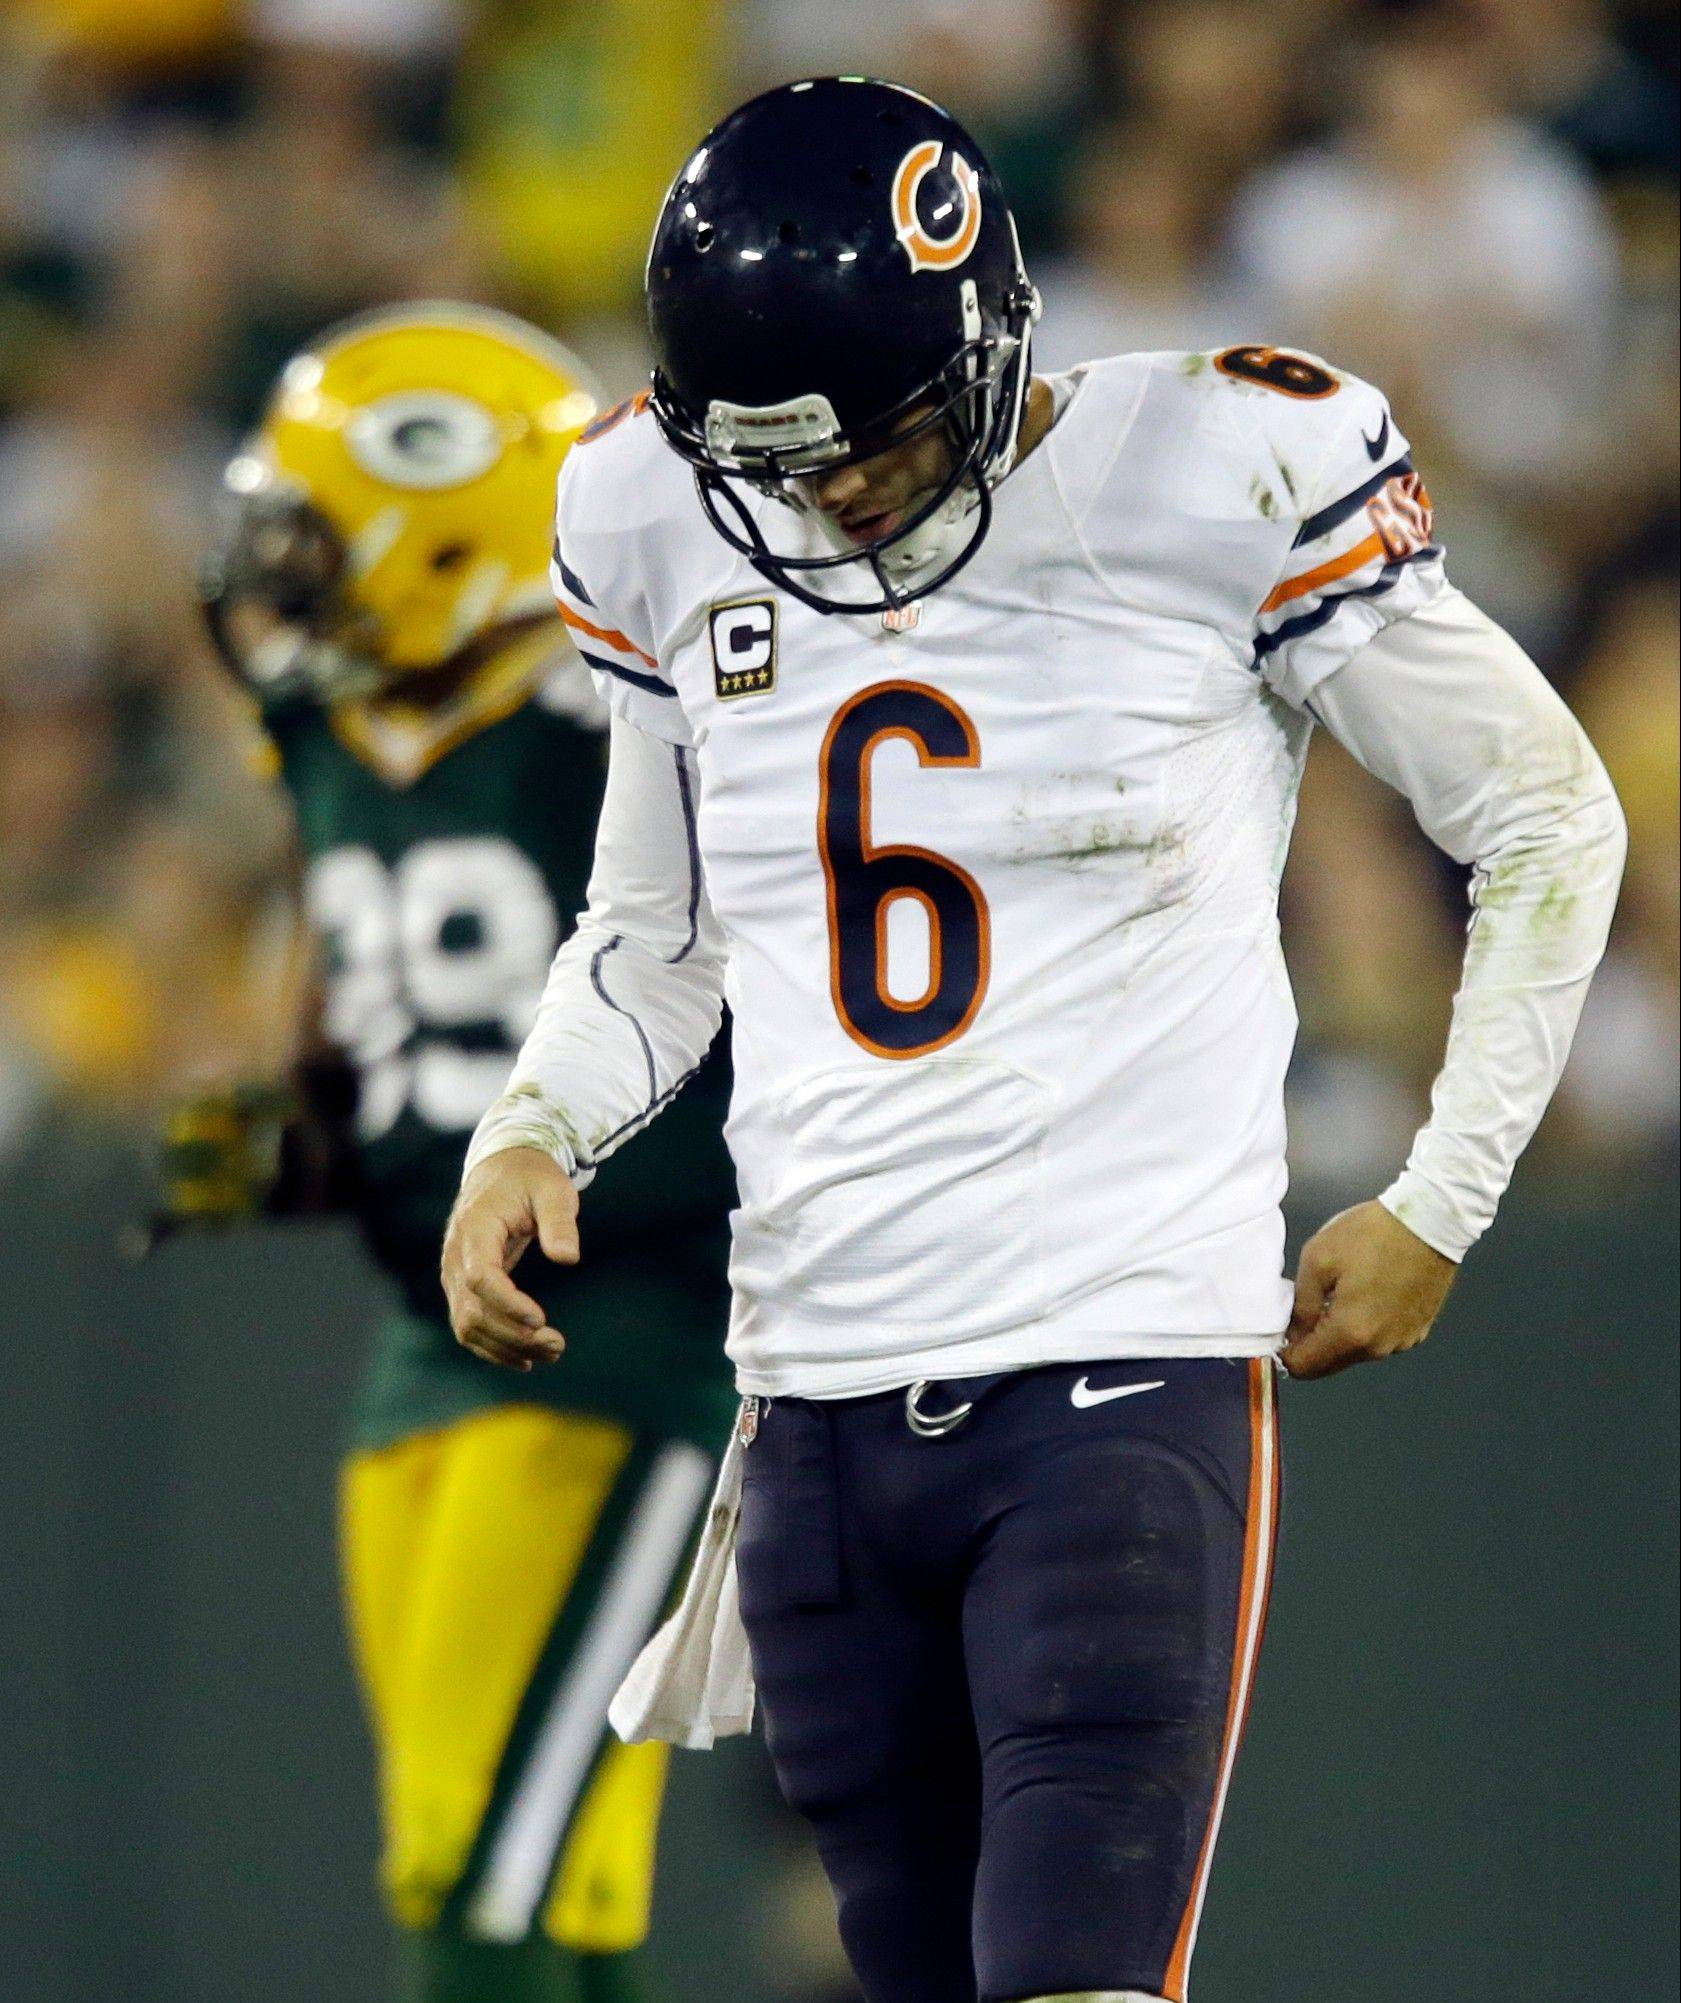 The biggest mistakes Bears quarterback Jay Cutler made in Green Bay didn't involve his attitude. It was his 4 interceptions.